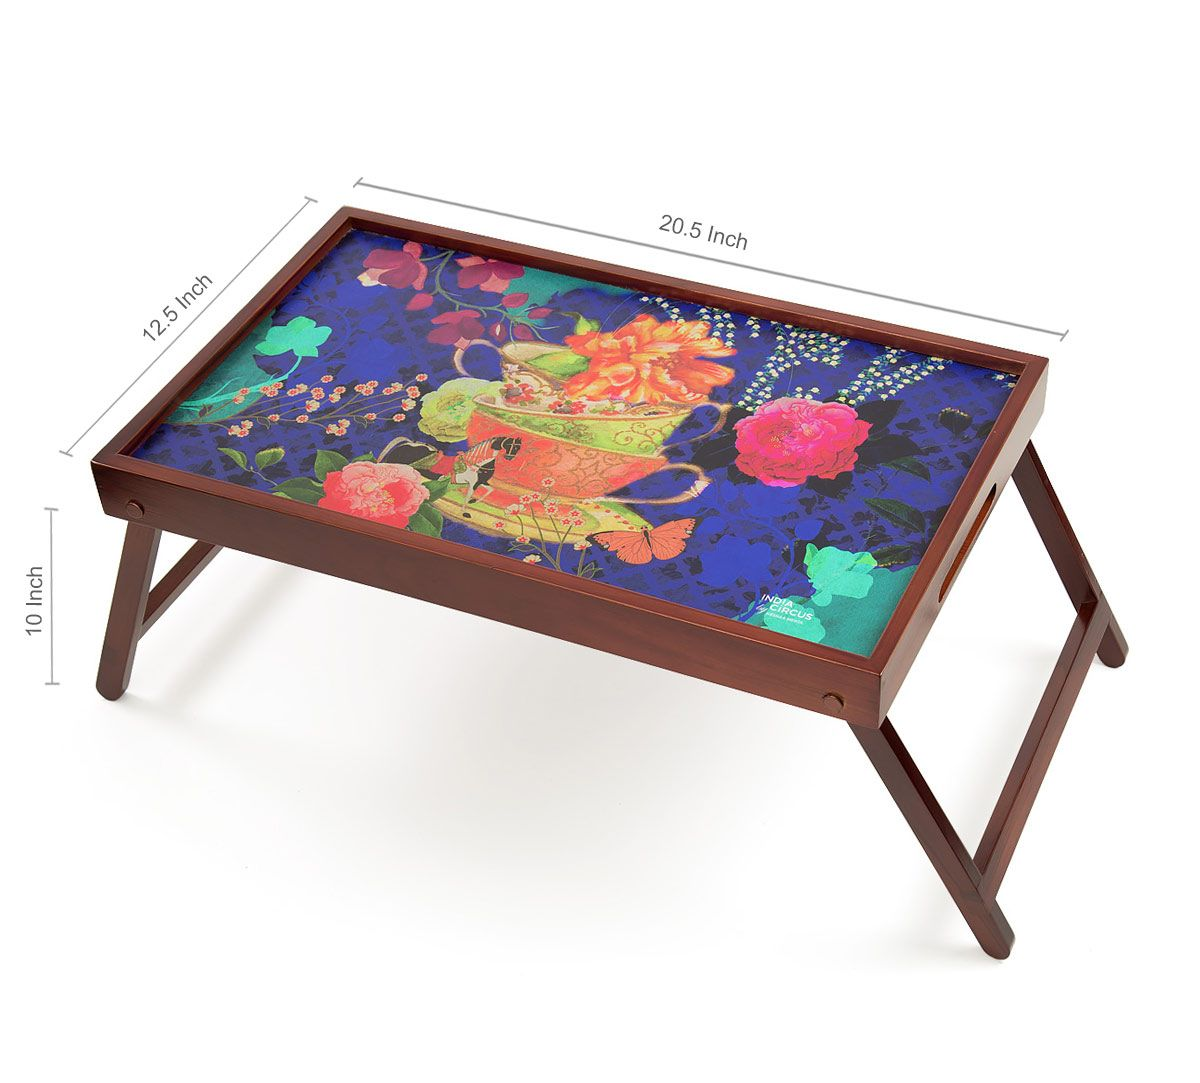 India Circus Floral Cup Illusion Breakfast Tray